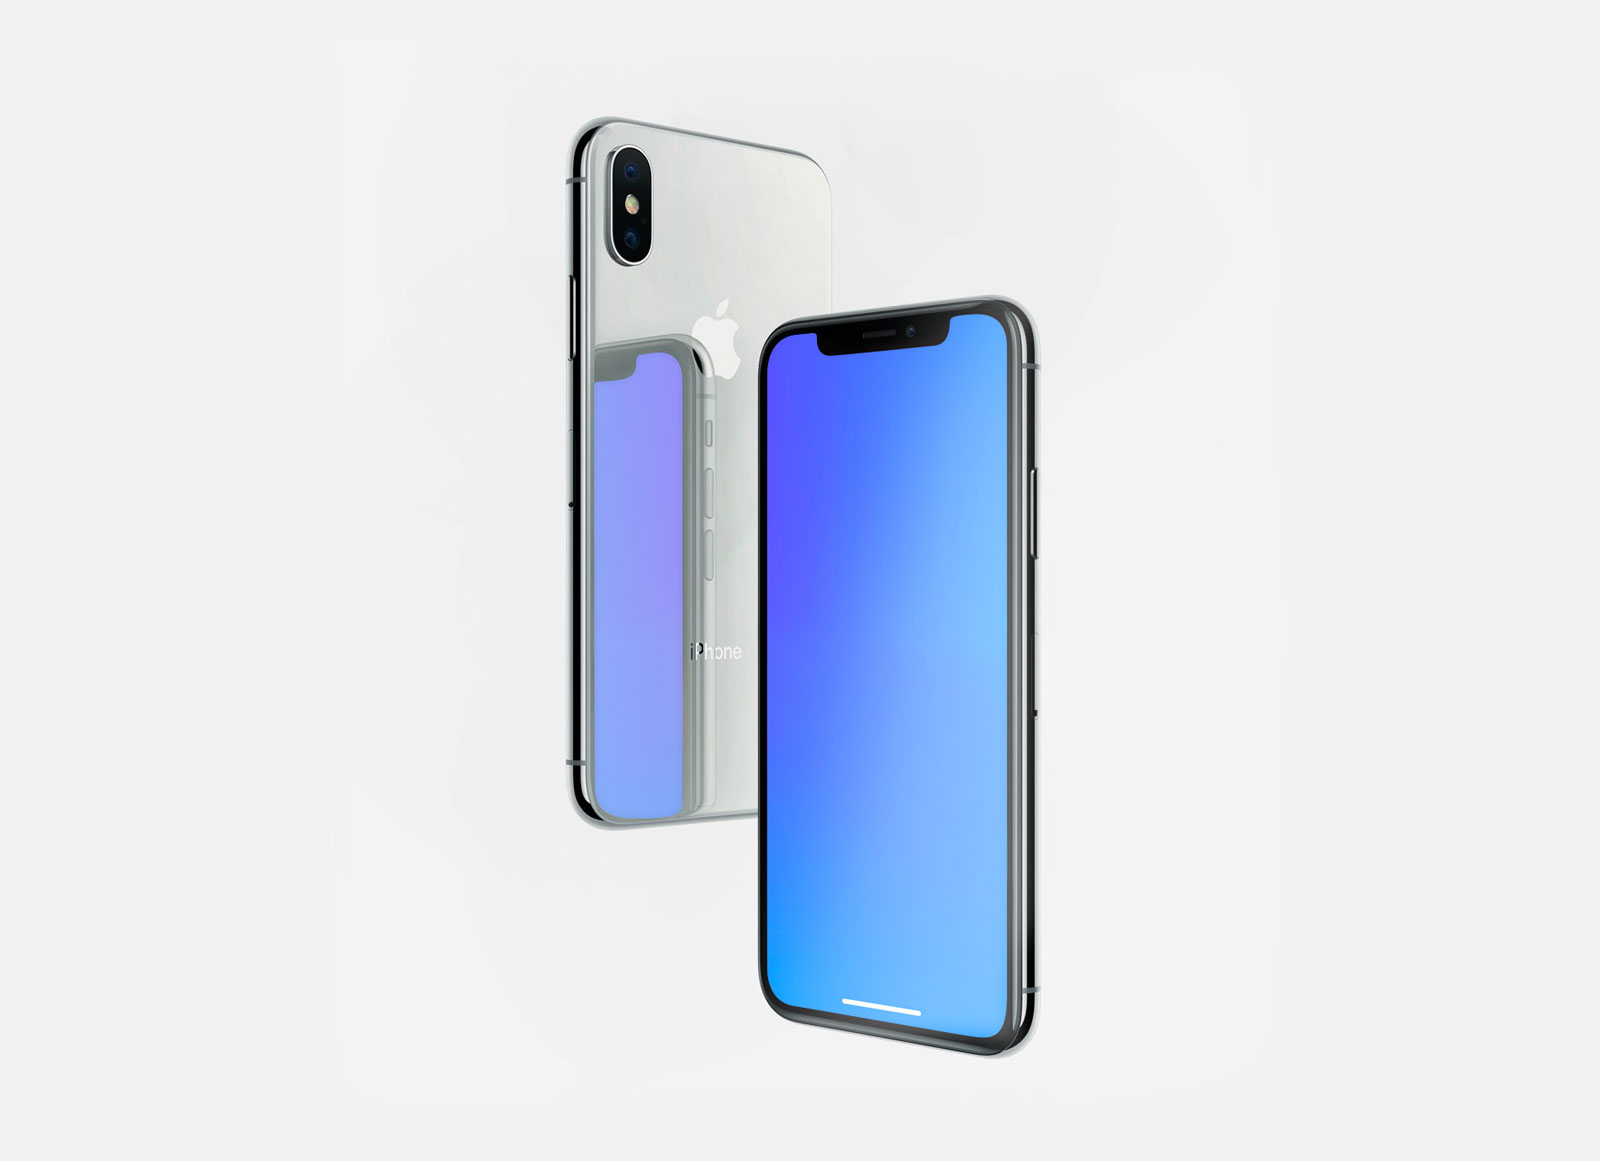 Free-Reflection-Apple-iPhone-X-Mockup-PSD